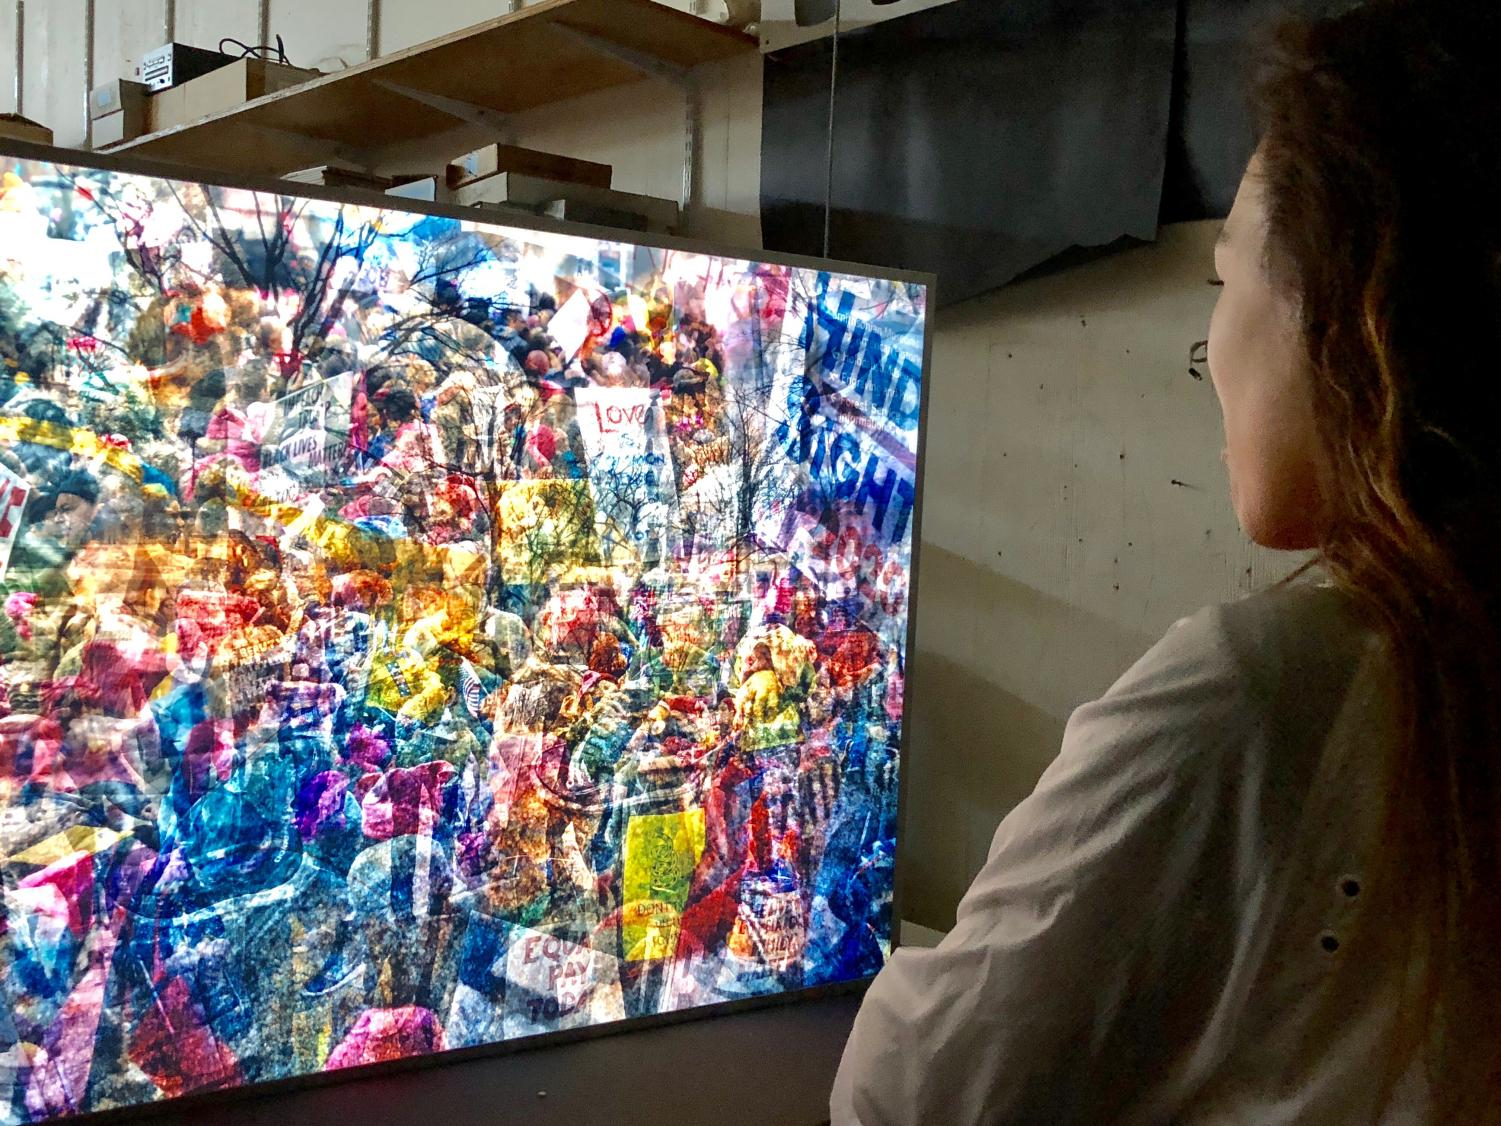 Day El-Wattar views one of Jim Campbell's pieces made from photos at the 2017 Washington D.C. Women's March. The work is made up fluorescent lights shining through a layer of 12 different photos from the event.